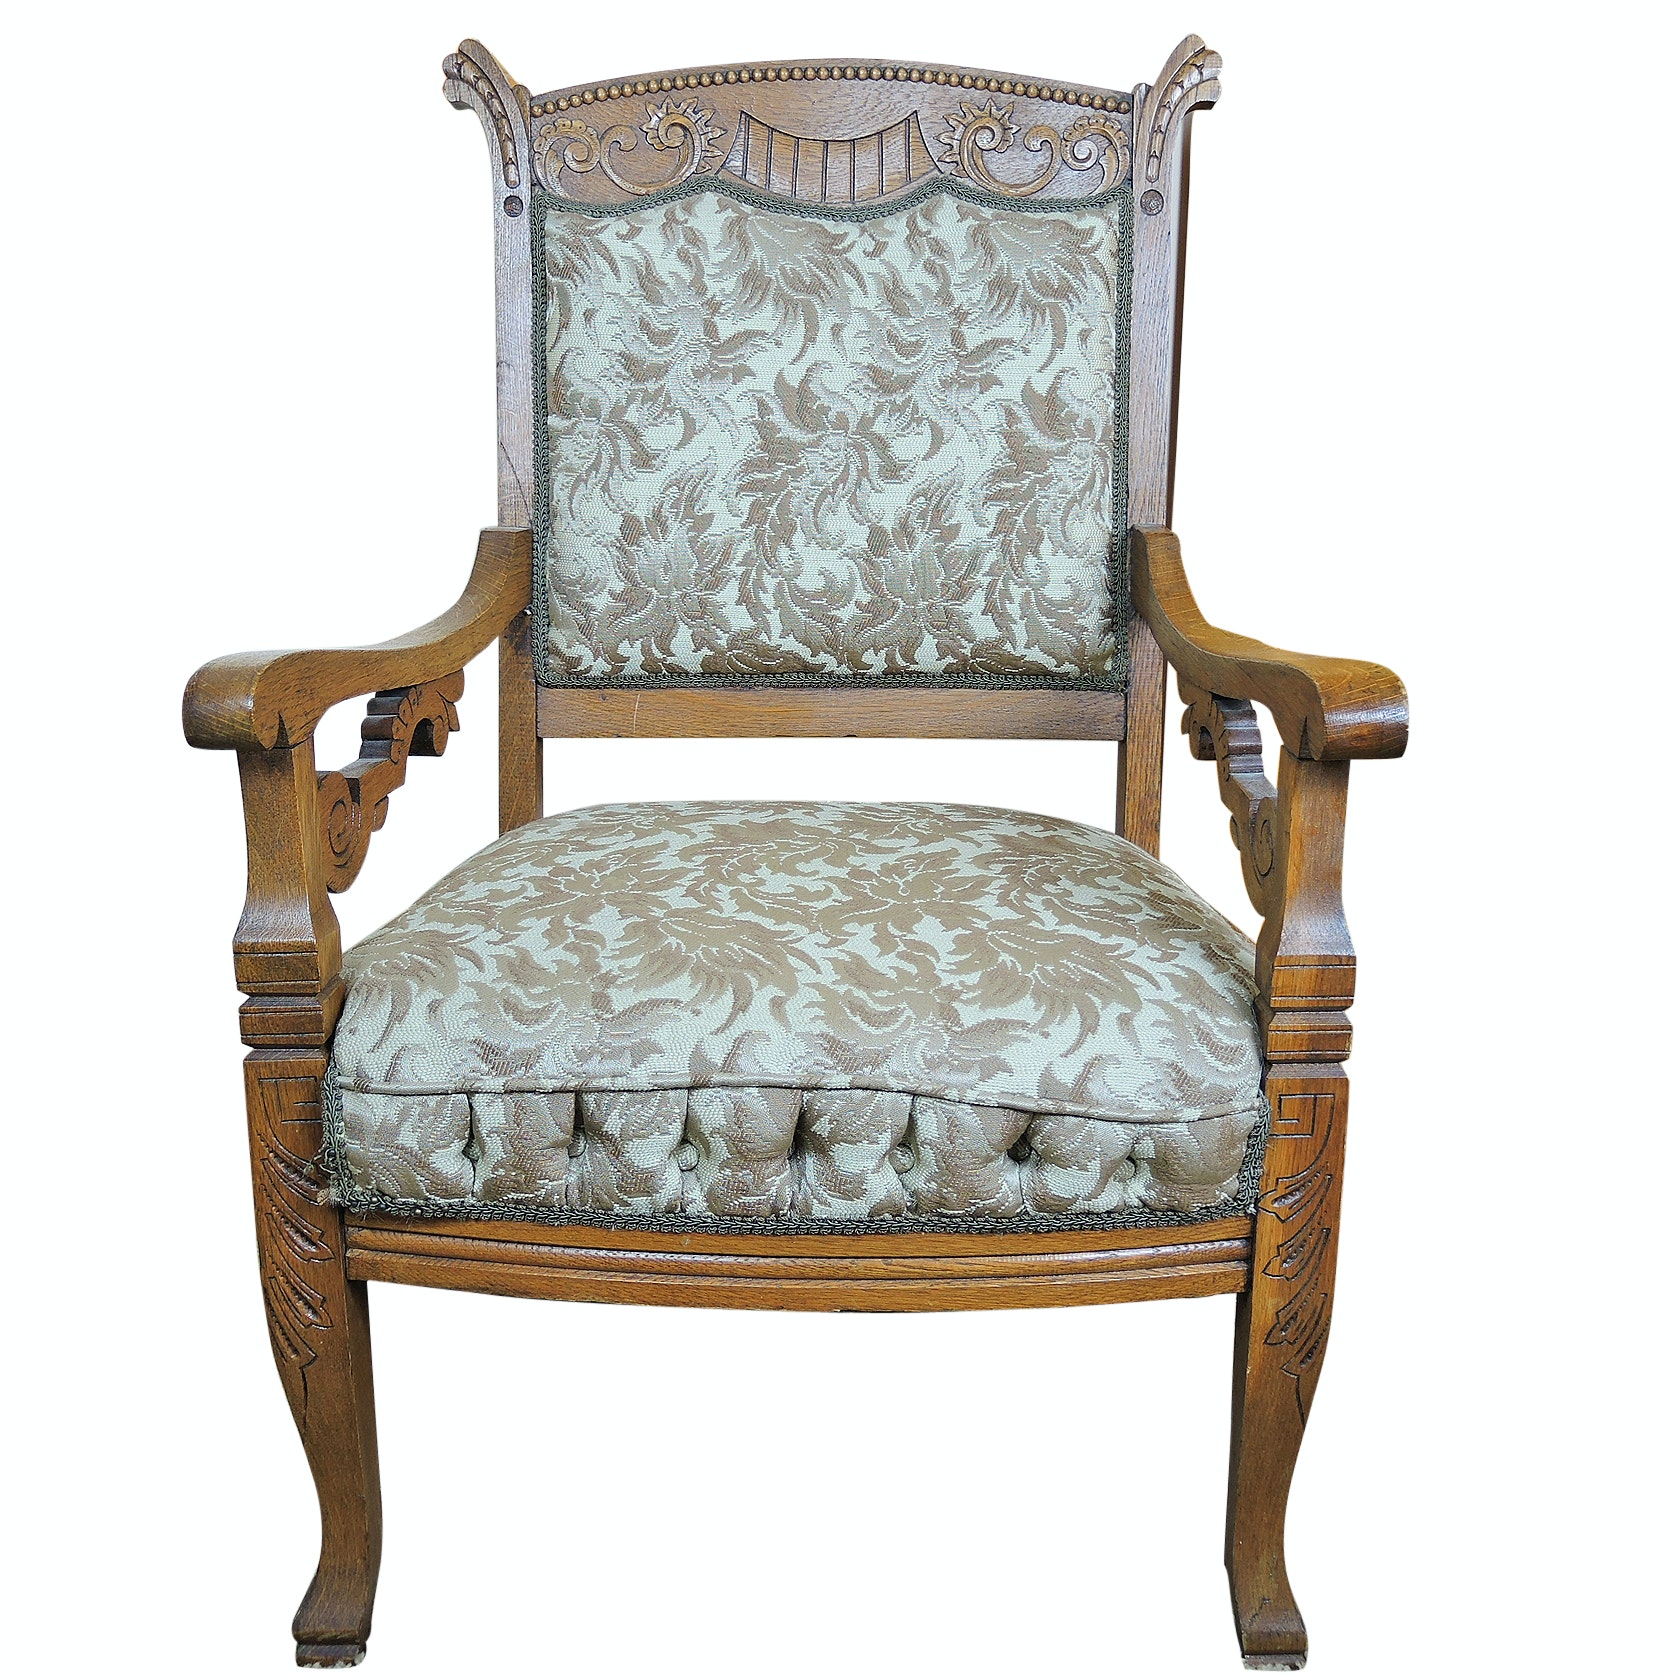 Carved Eastlake Style Oak Upholstered Armchair Late 19th Century